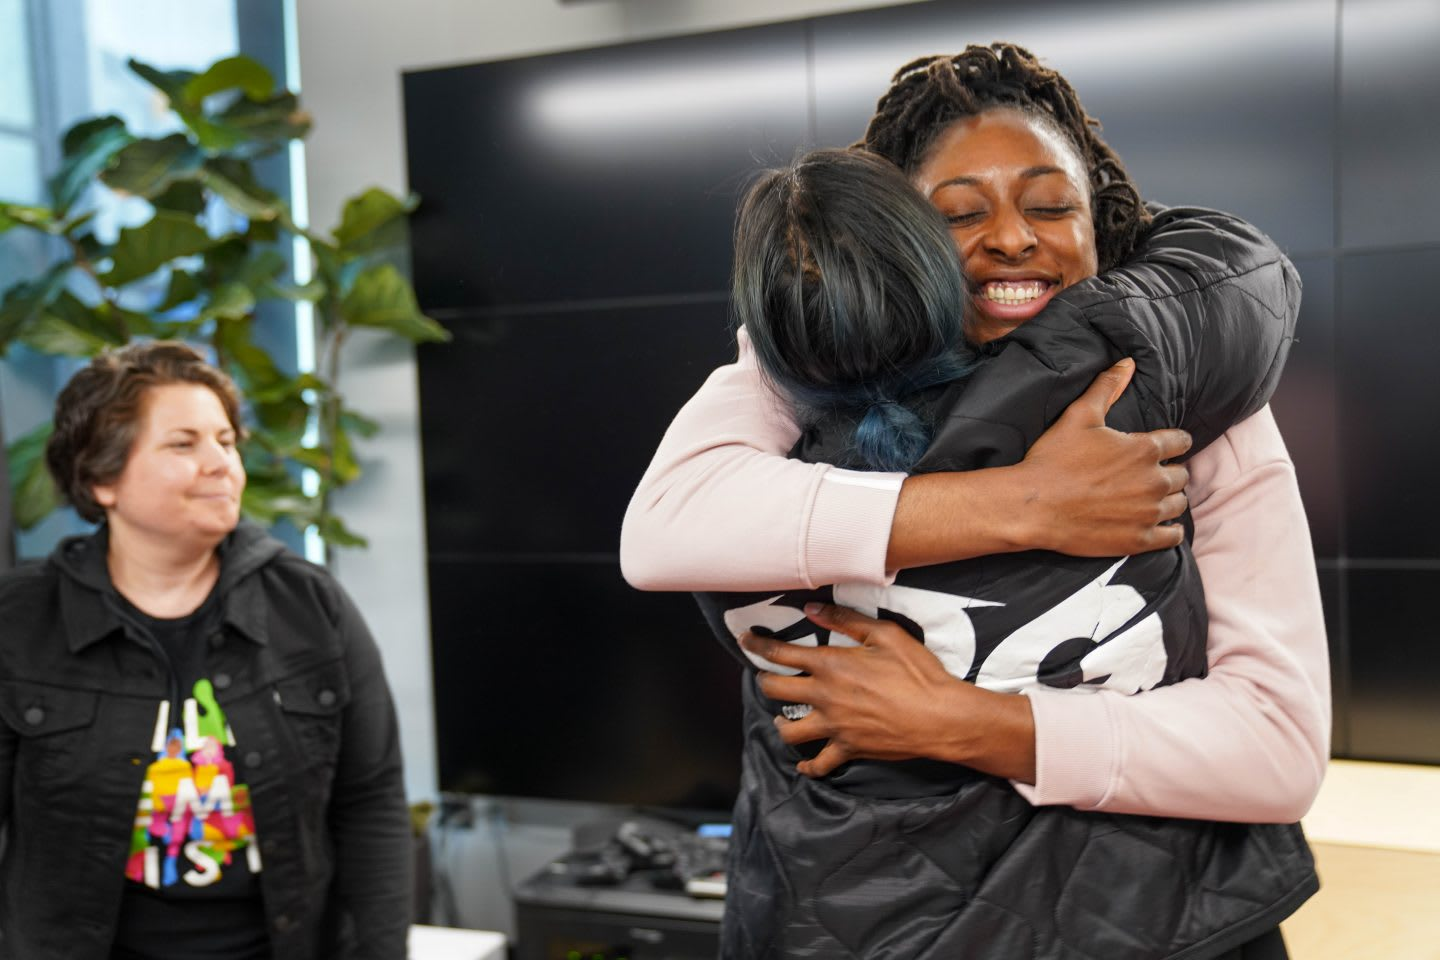 WNBA player Nneka Ogwumike hugs colleague while smiling happily, teamwork, friendship, collaboration, happy, appreciation, GamePlan A